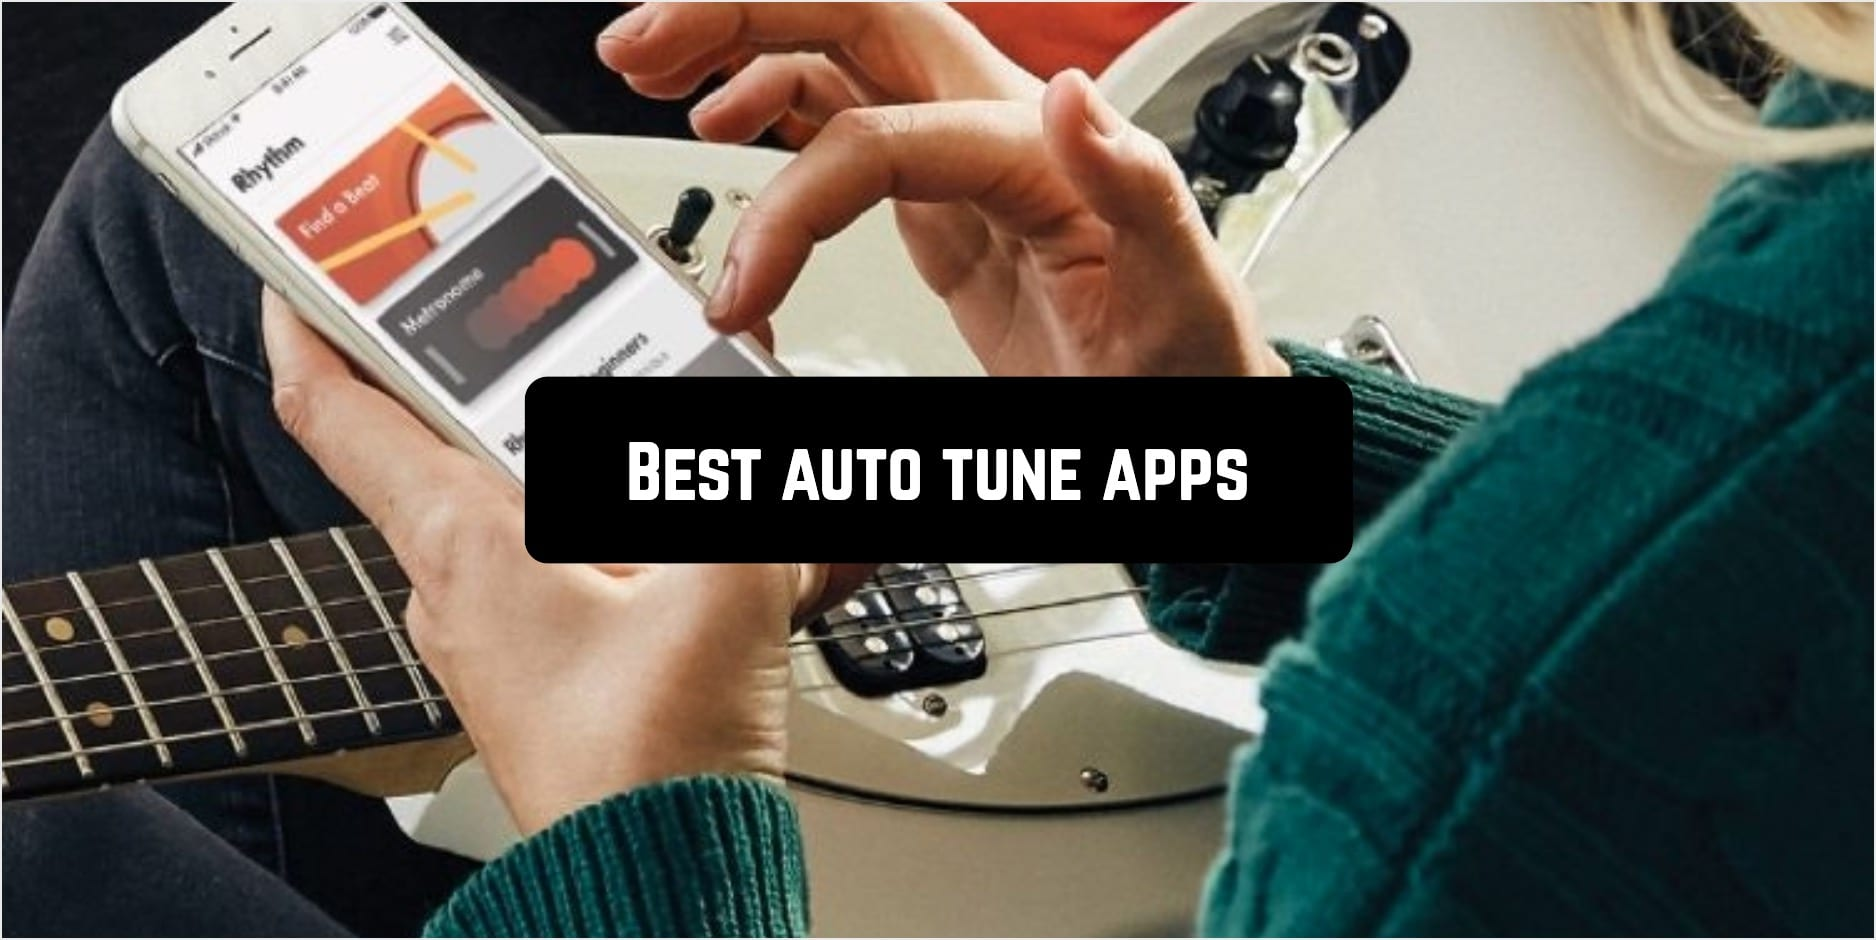 Best auto tune apps